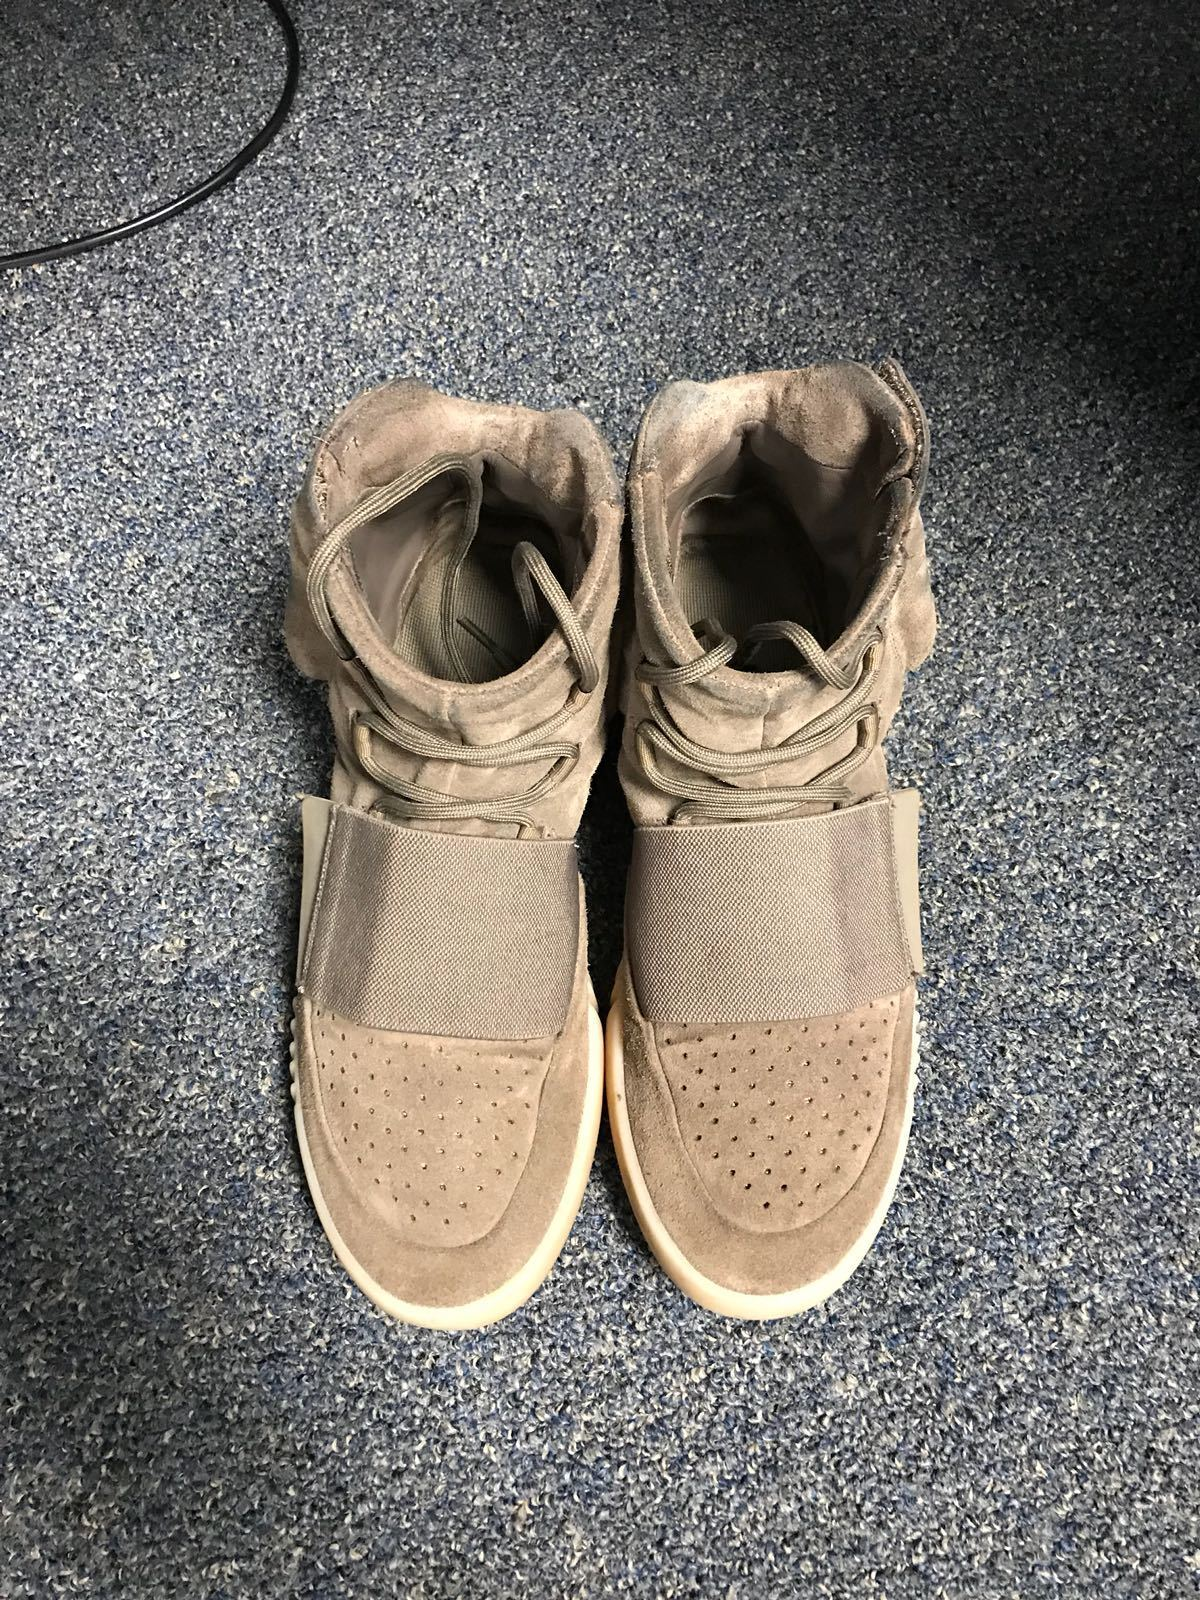 100% Authentic Adidas YeezyBoost 750 Brown Size 9.5